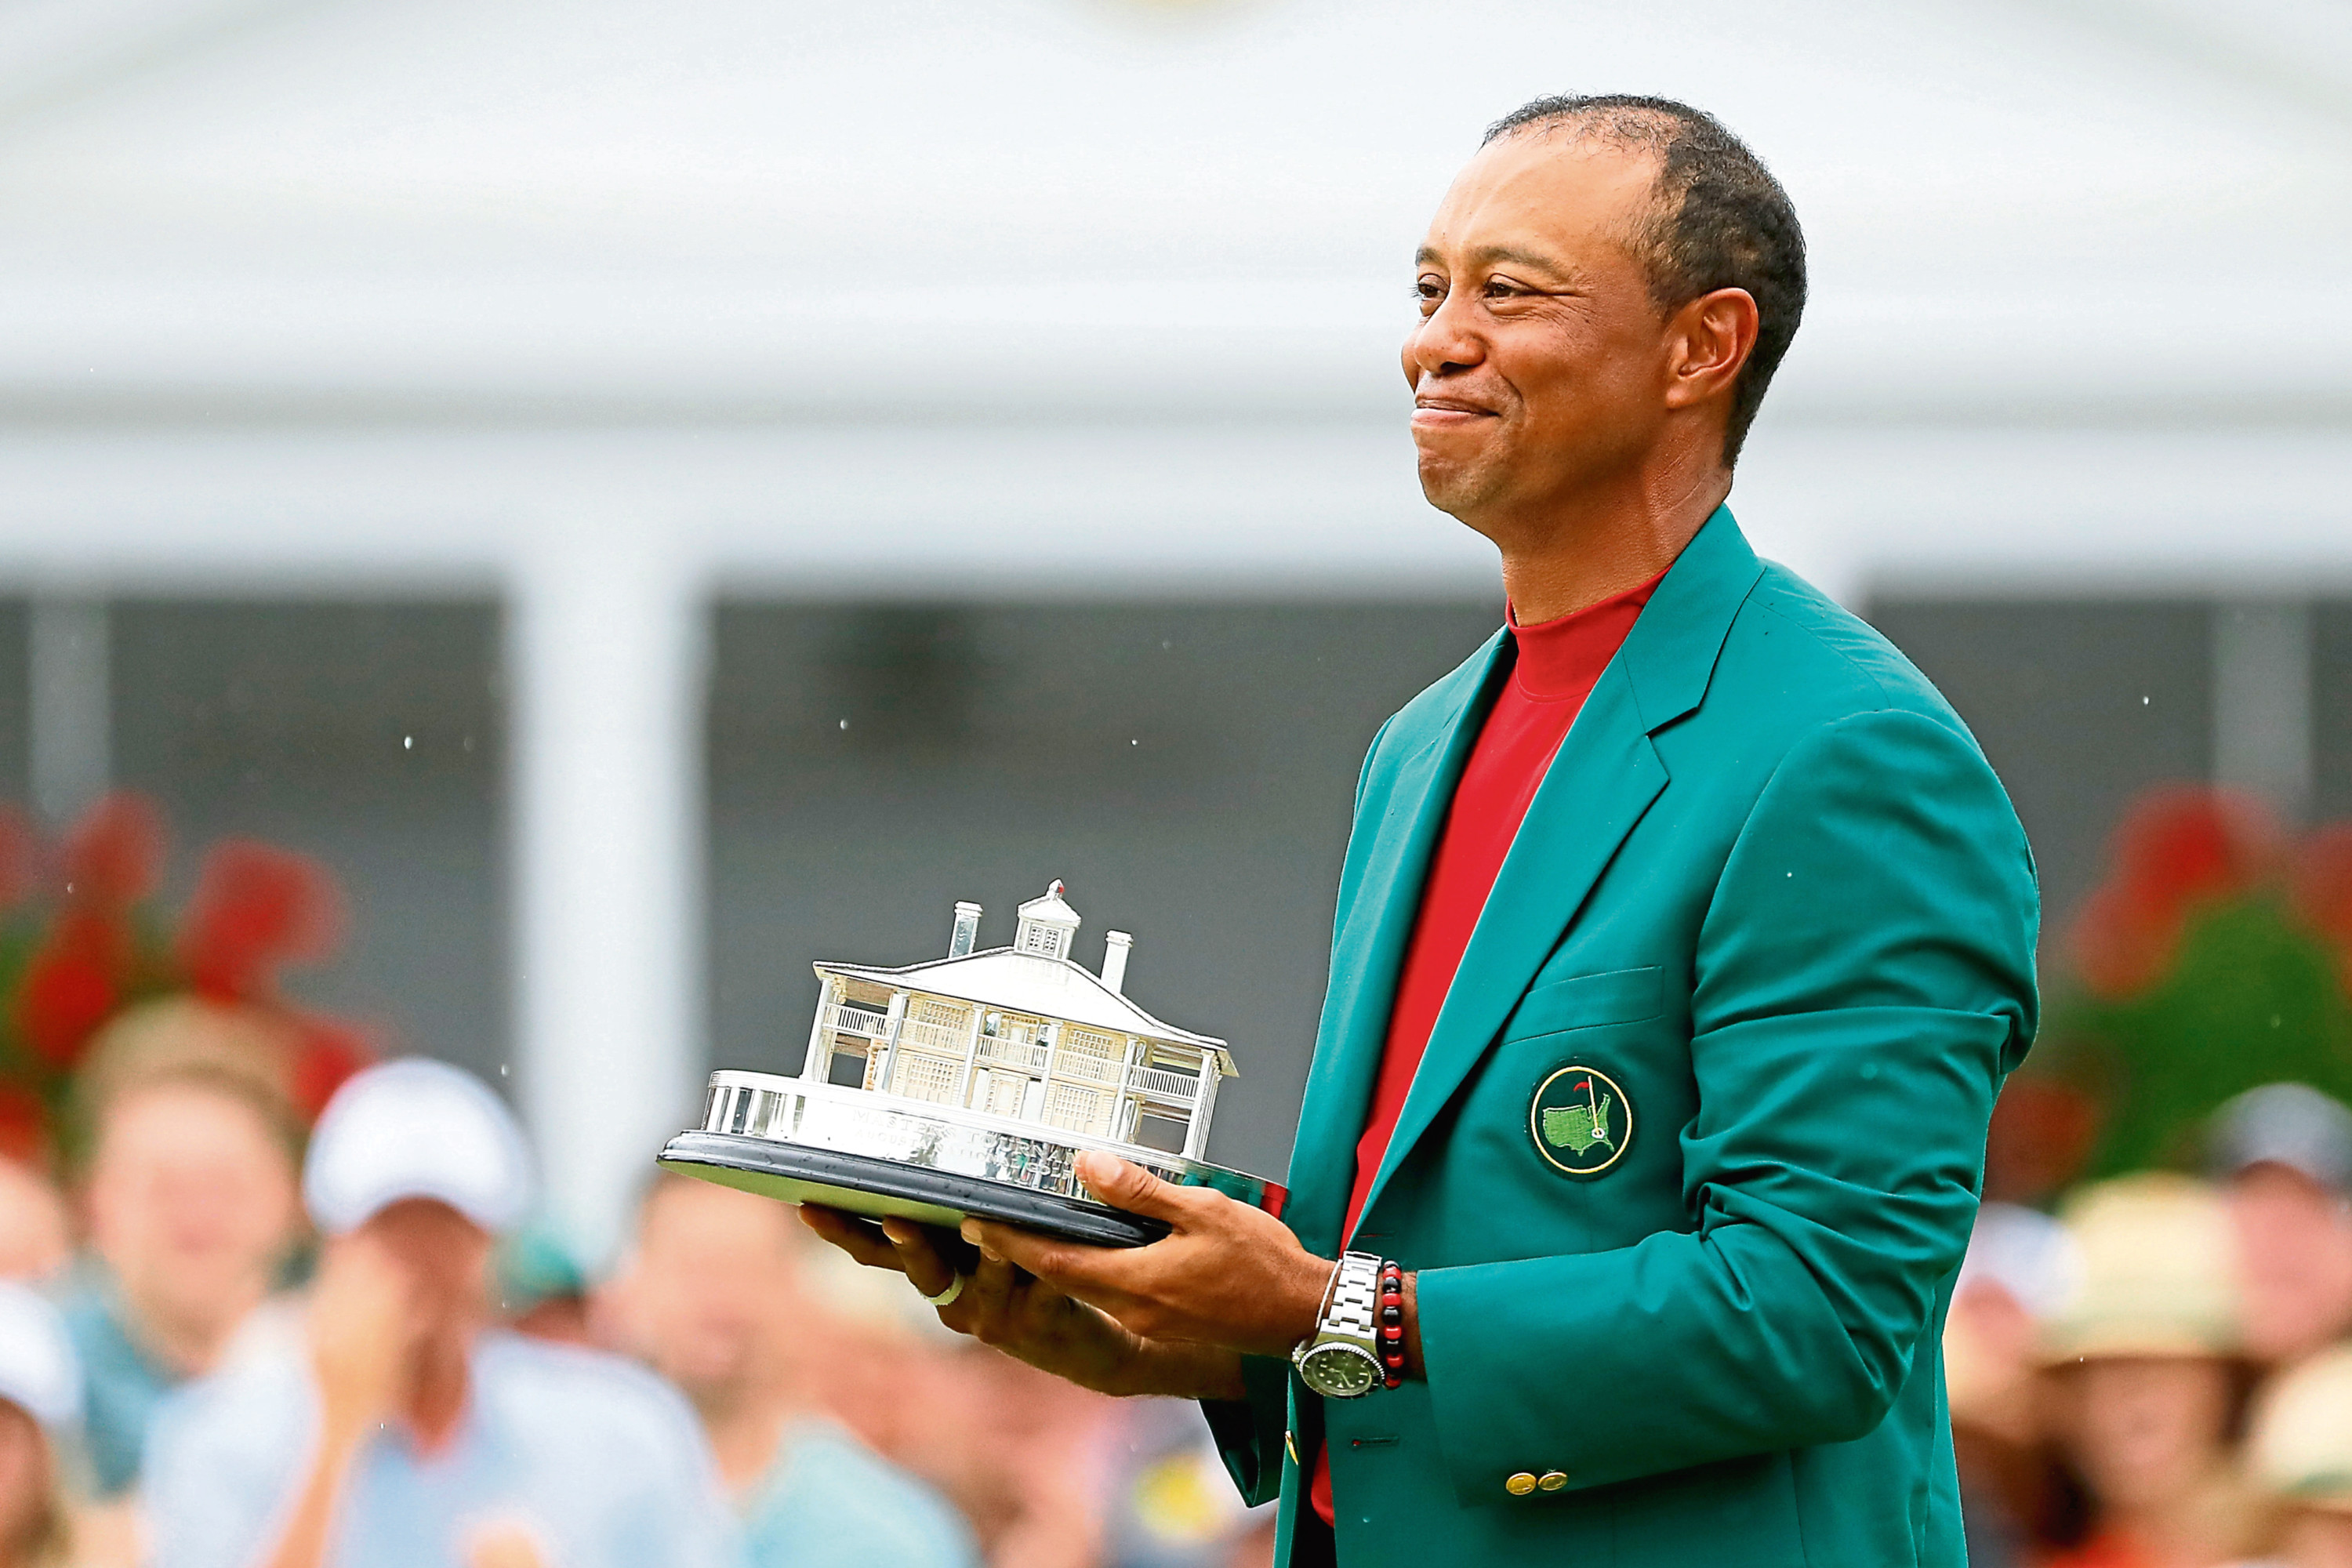 Tiger Woods won his first major for 11 years and his fifth Masters after a 14-year gap.